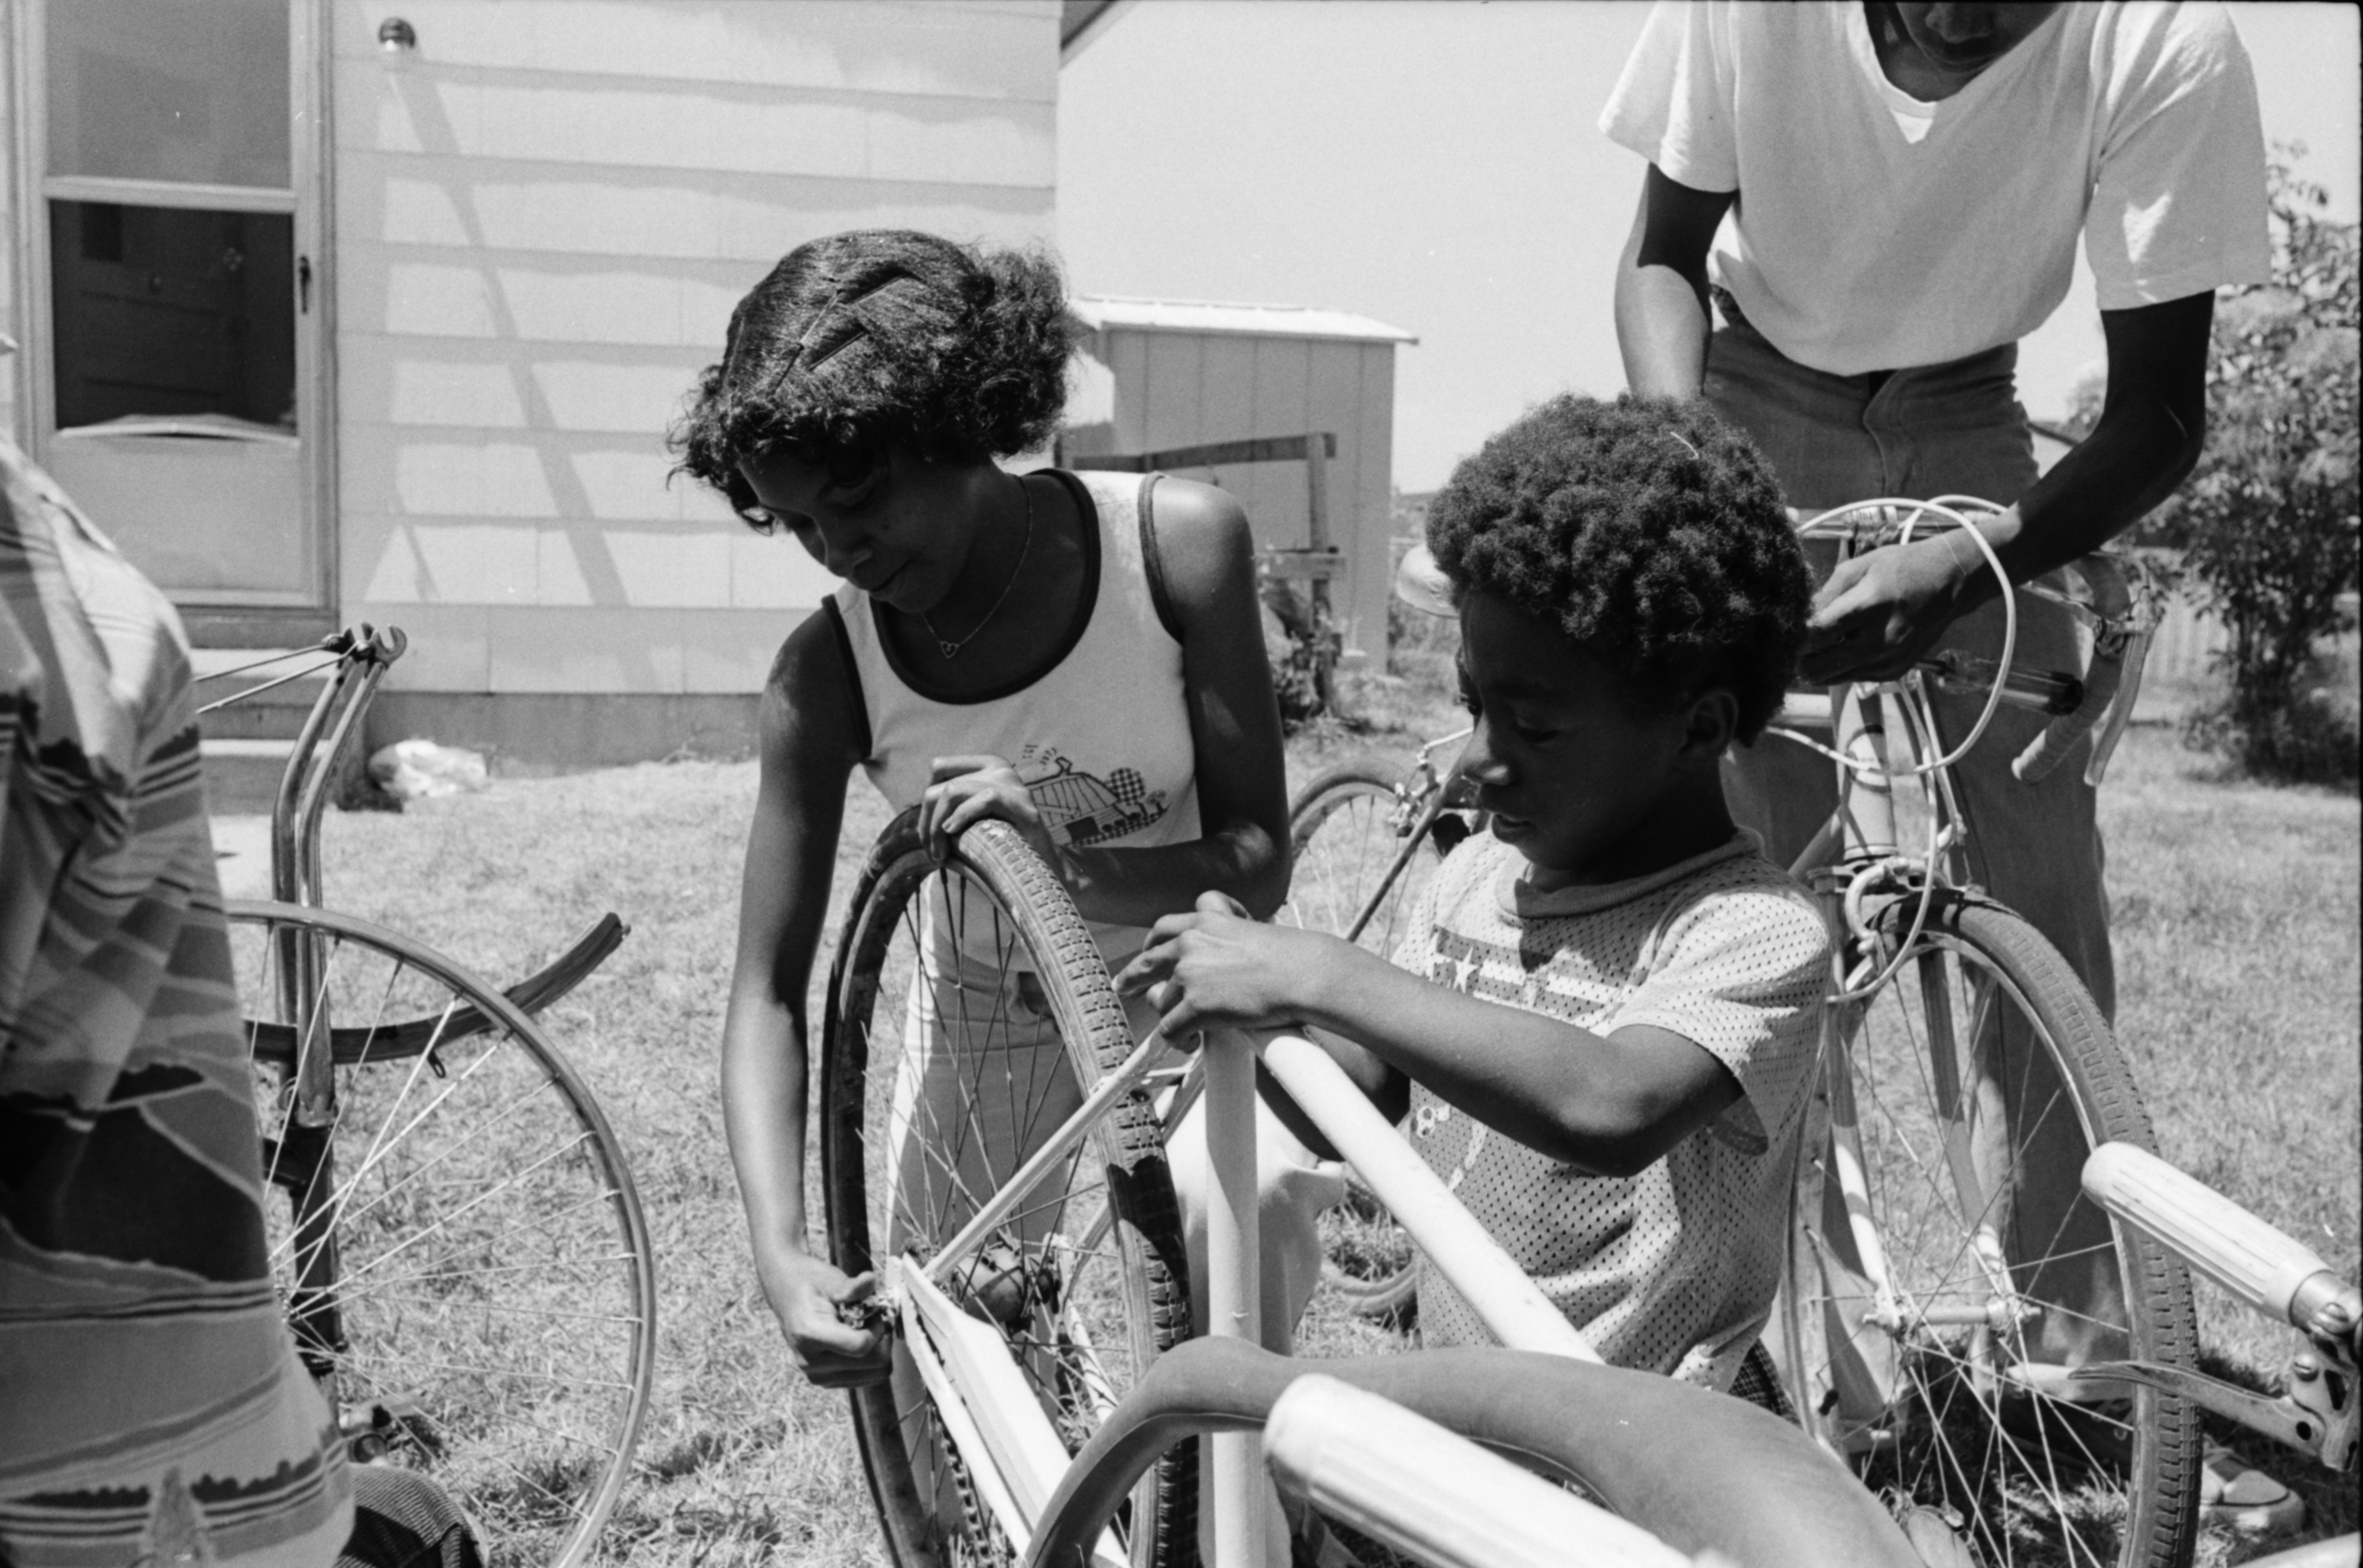 Monica Maddox And Kelvin Jones Fix Up A Bike, July 1978 image